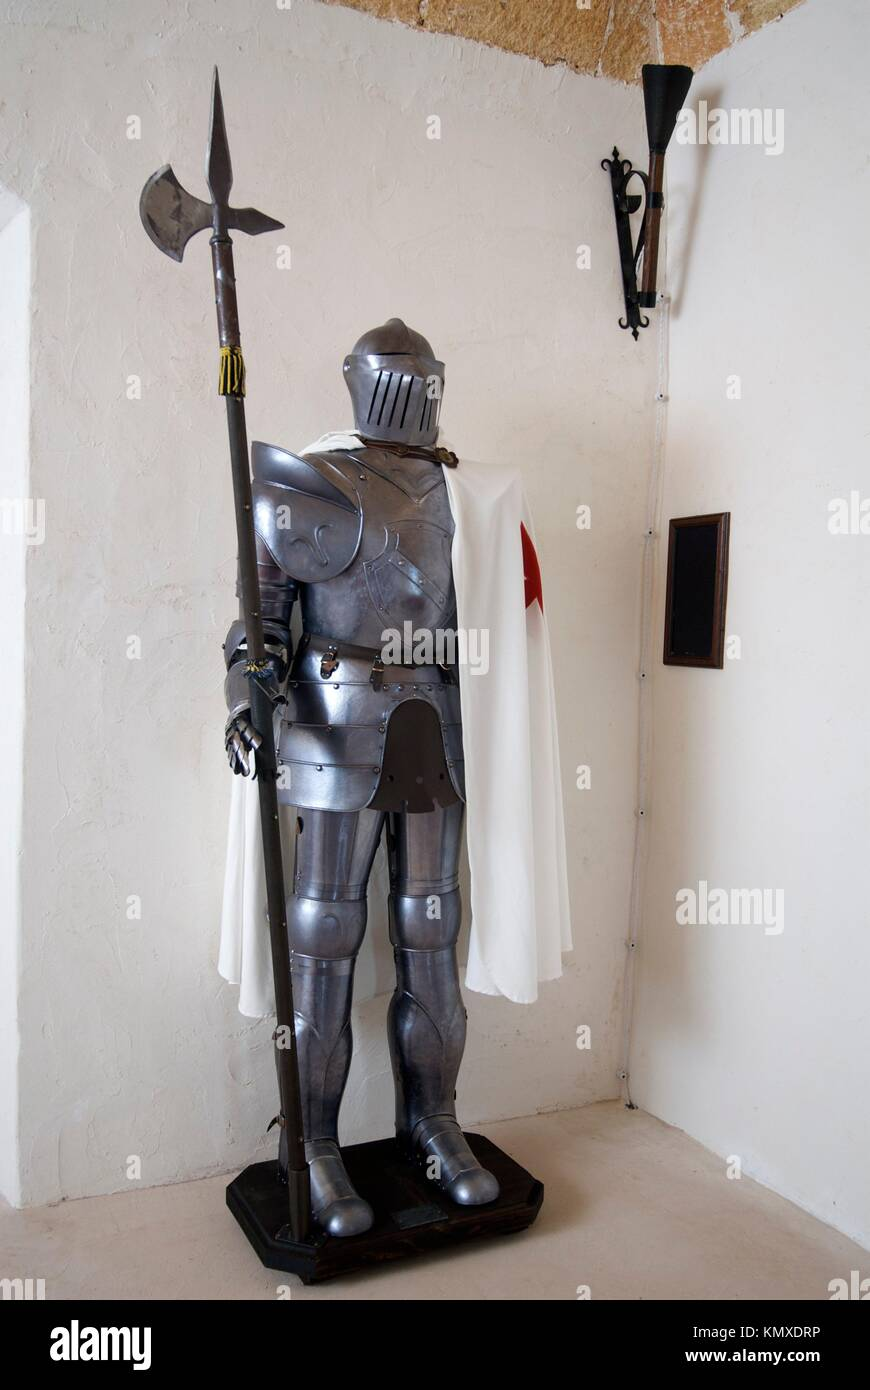 Fake Medieval armour, used as decoration in a private home - Stock Image